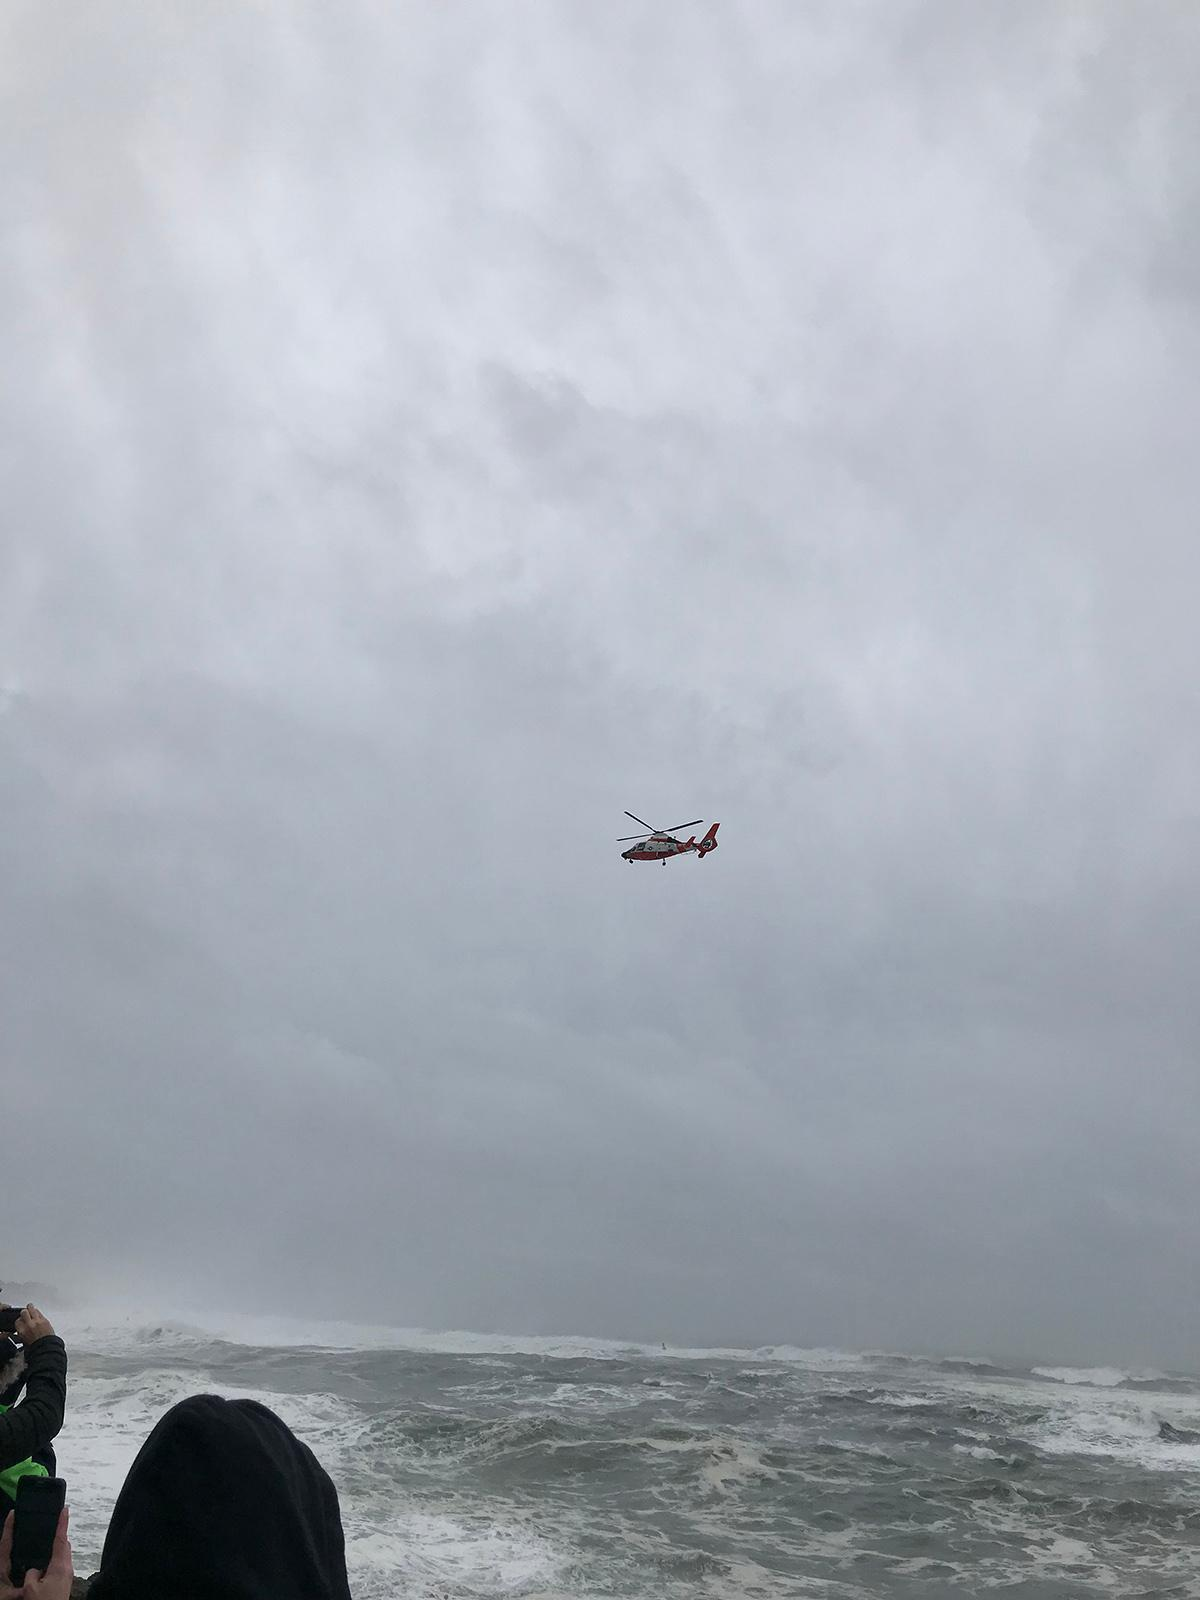 Coast Guard searches for man swept out to sea near Depoe Bay on January 18, 2018 - Oregon State Police photo.jpeg